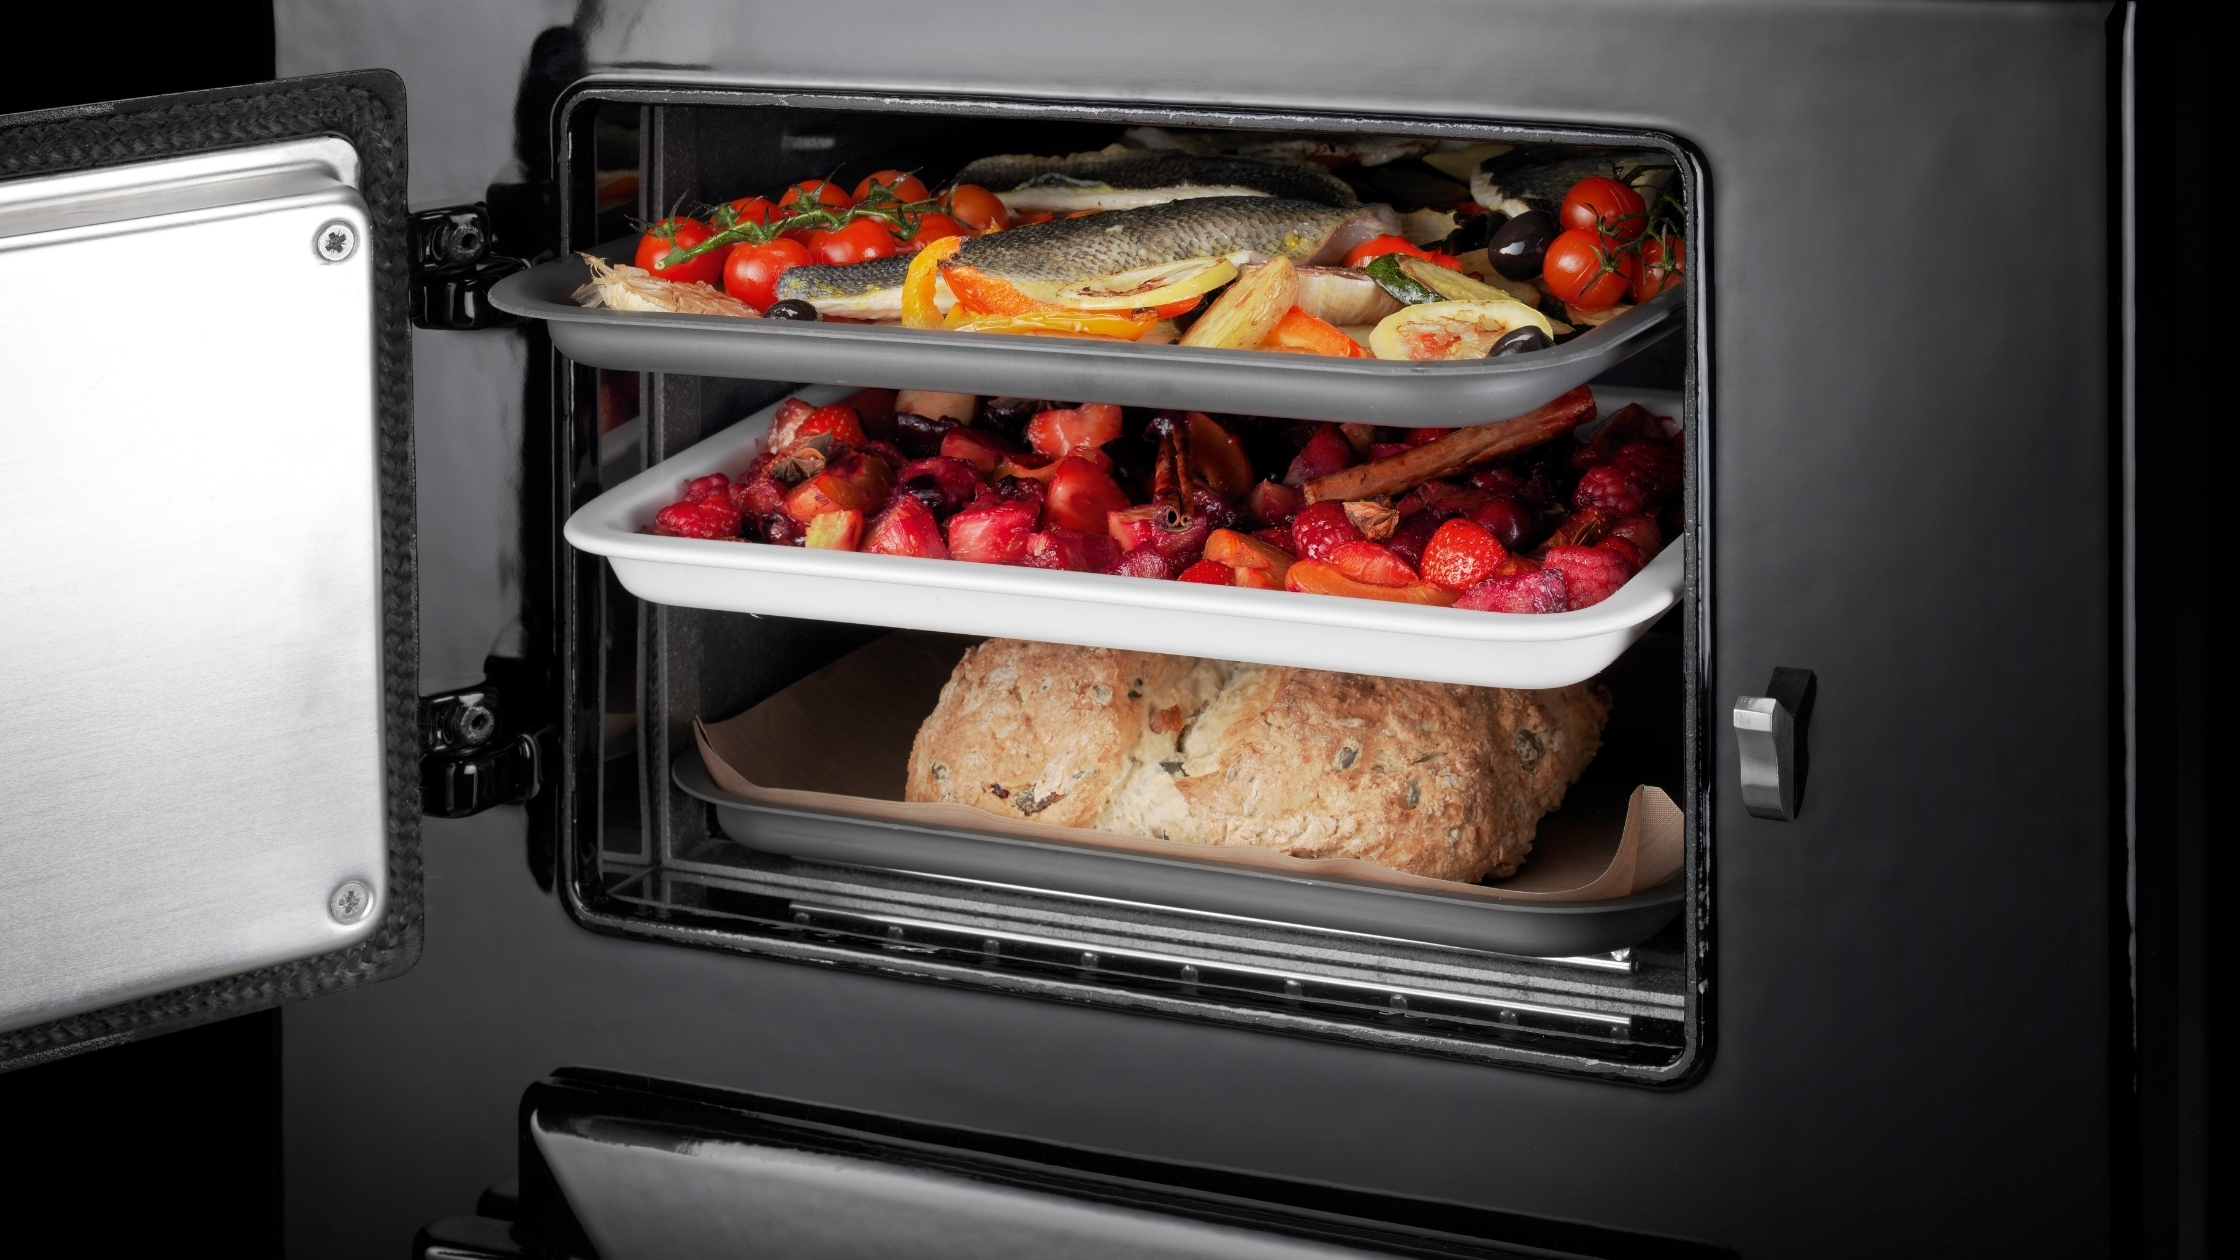 Top Roasting and Baking Oven AGA 60